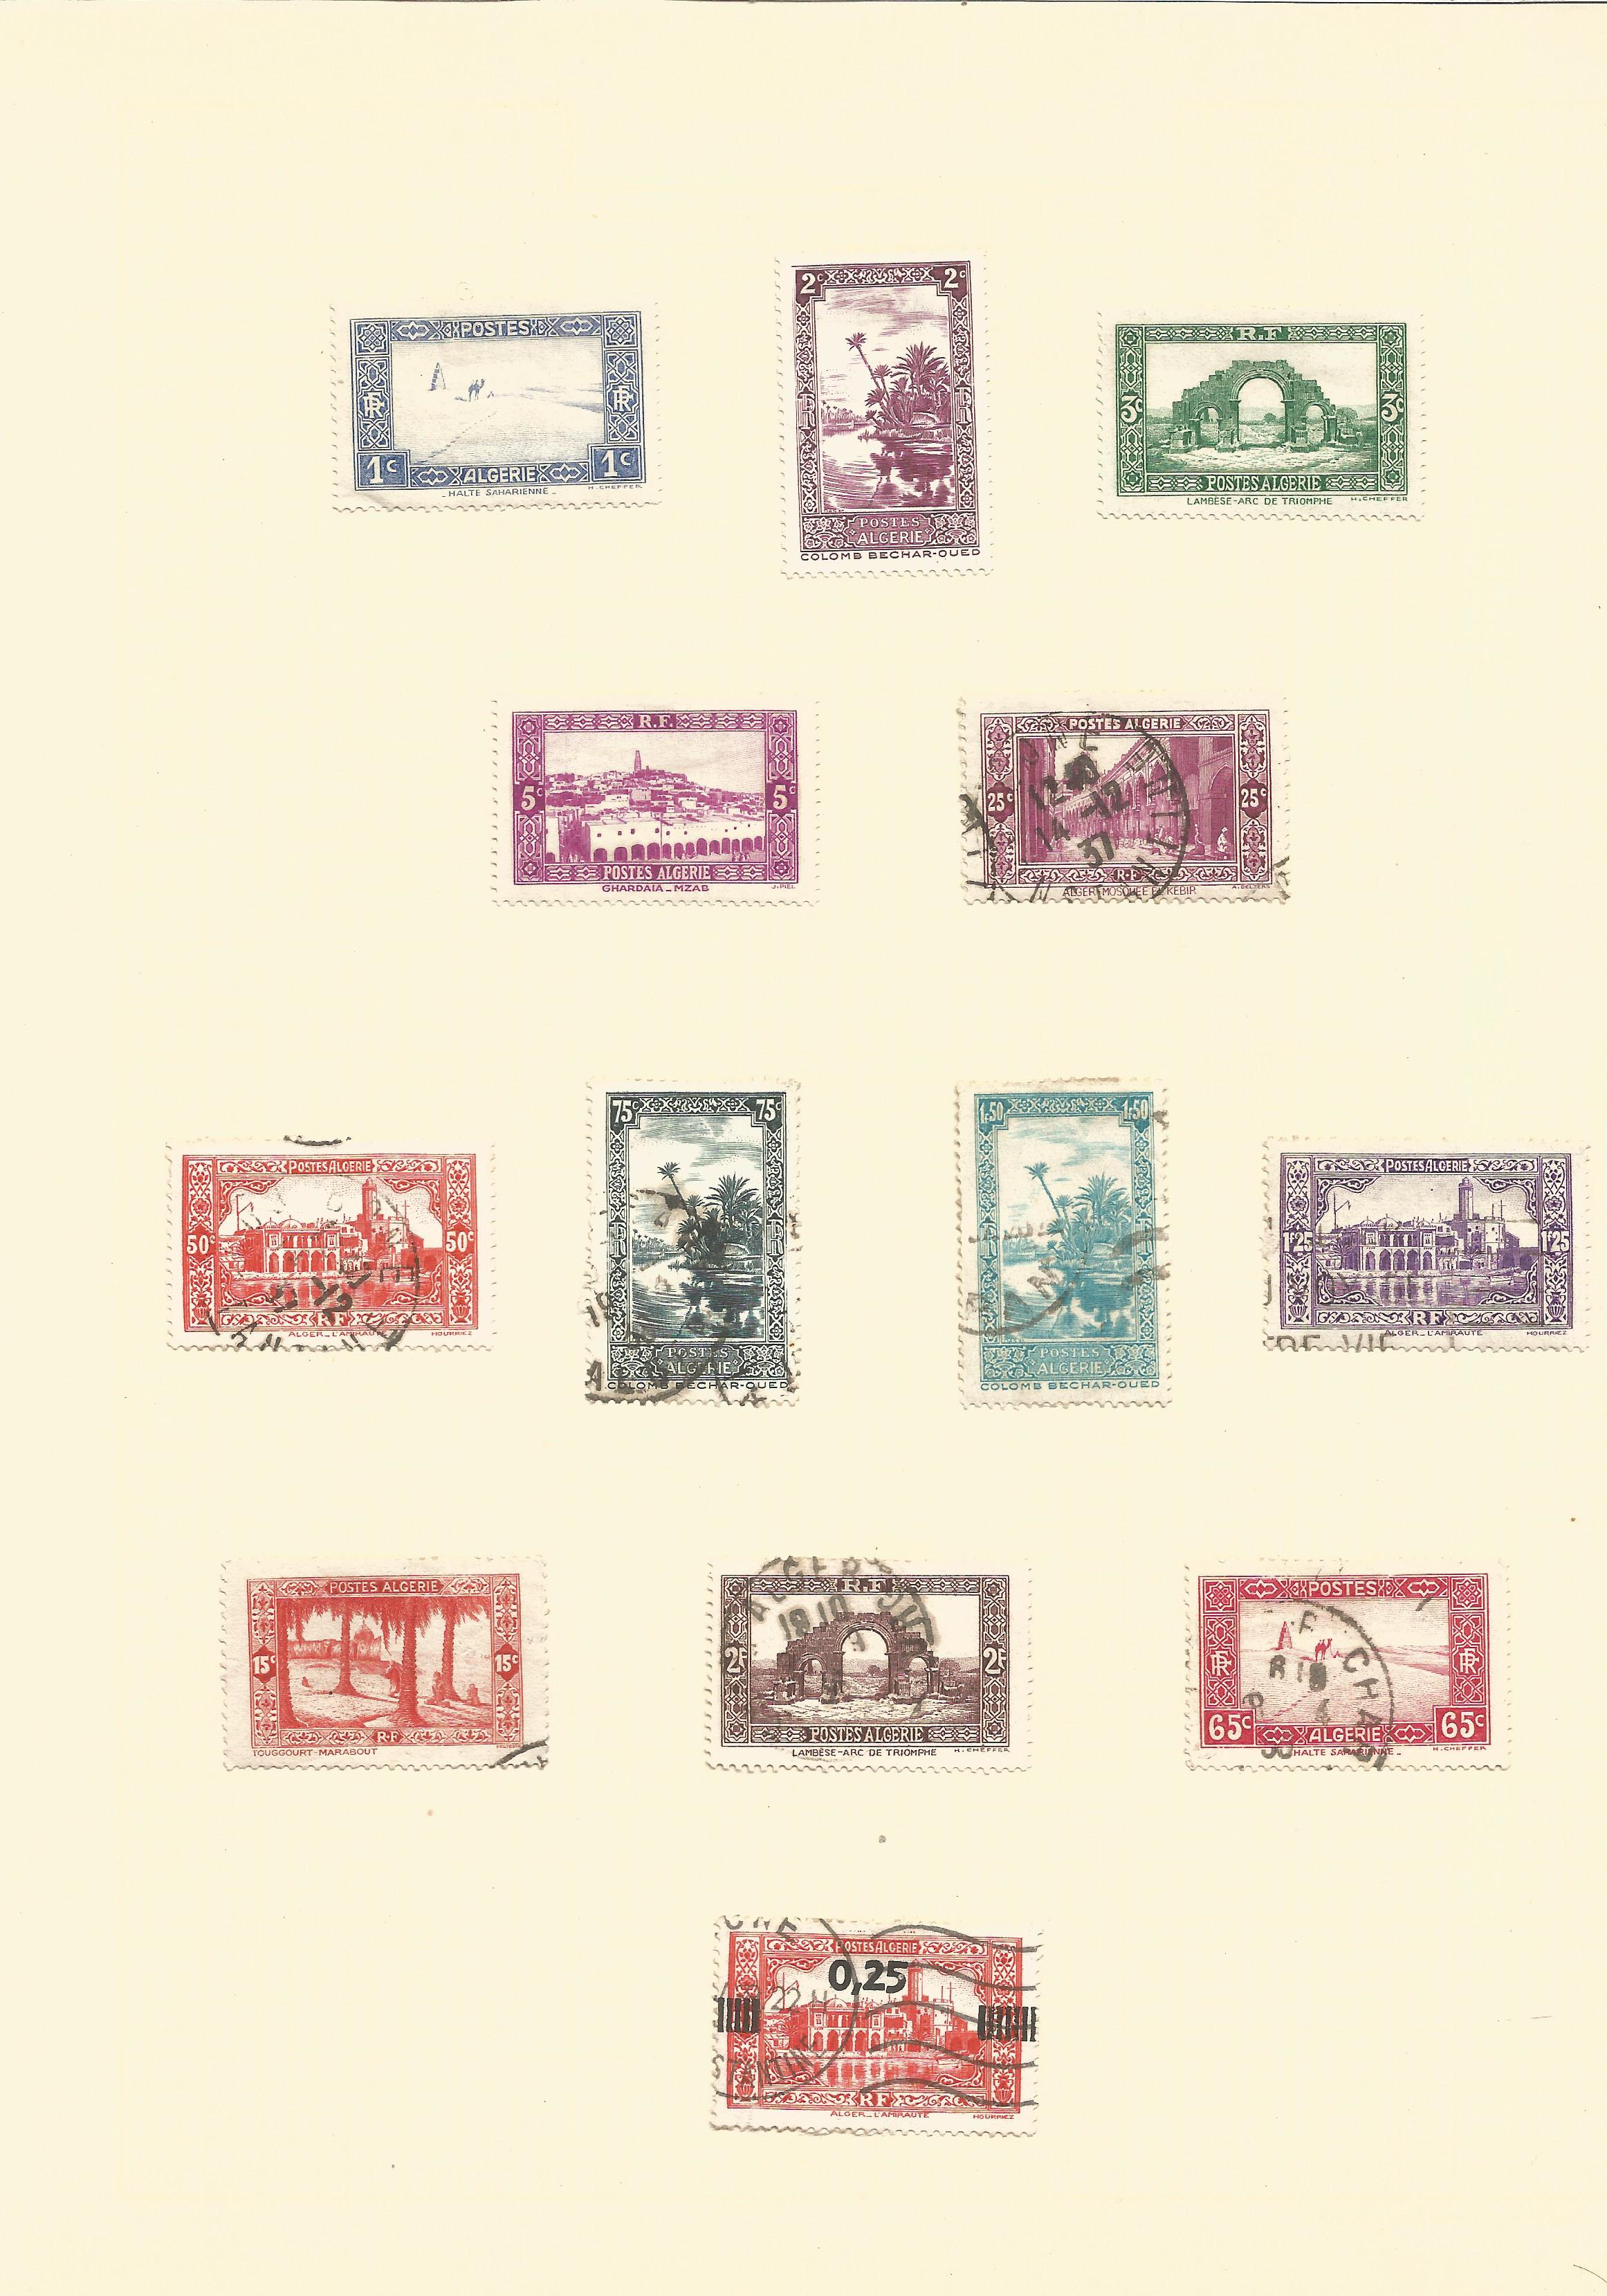 Algeria mint and used stamps on 4 pages. Good condition. We combine postage on multiple winning lots